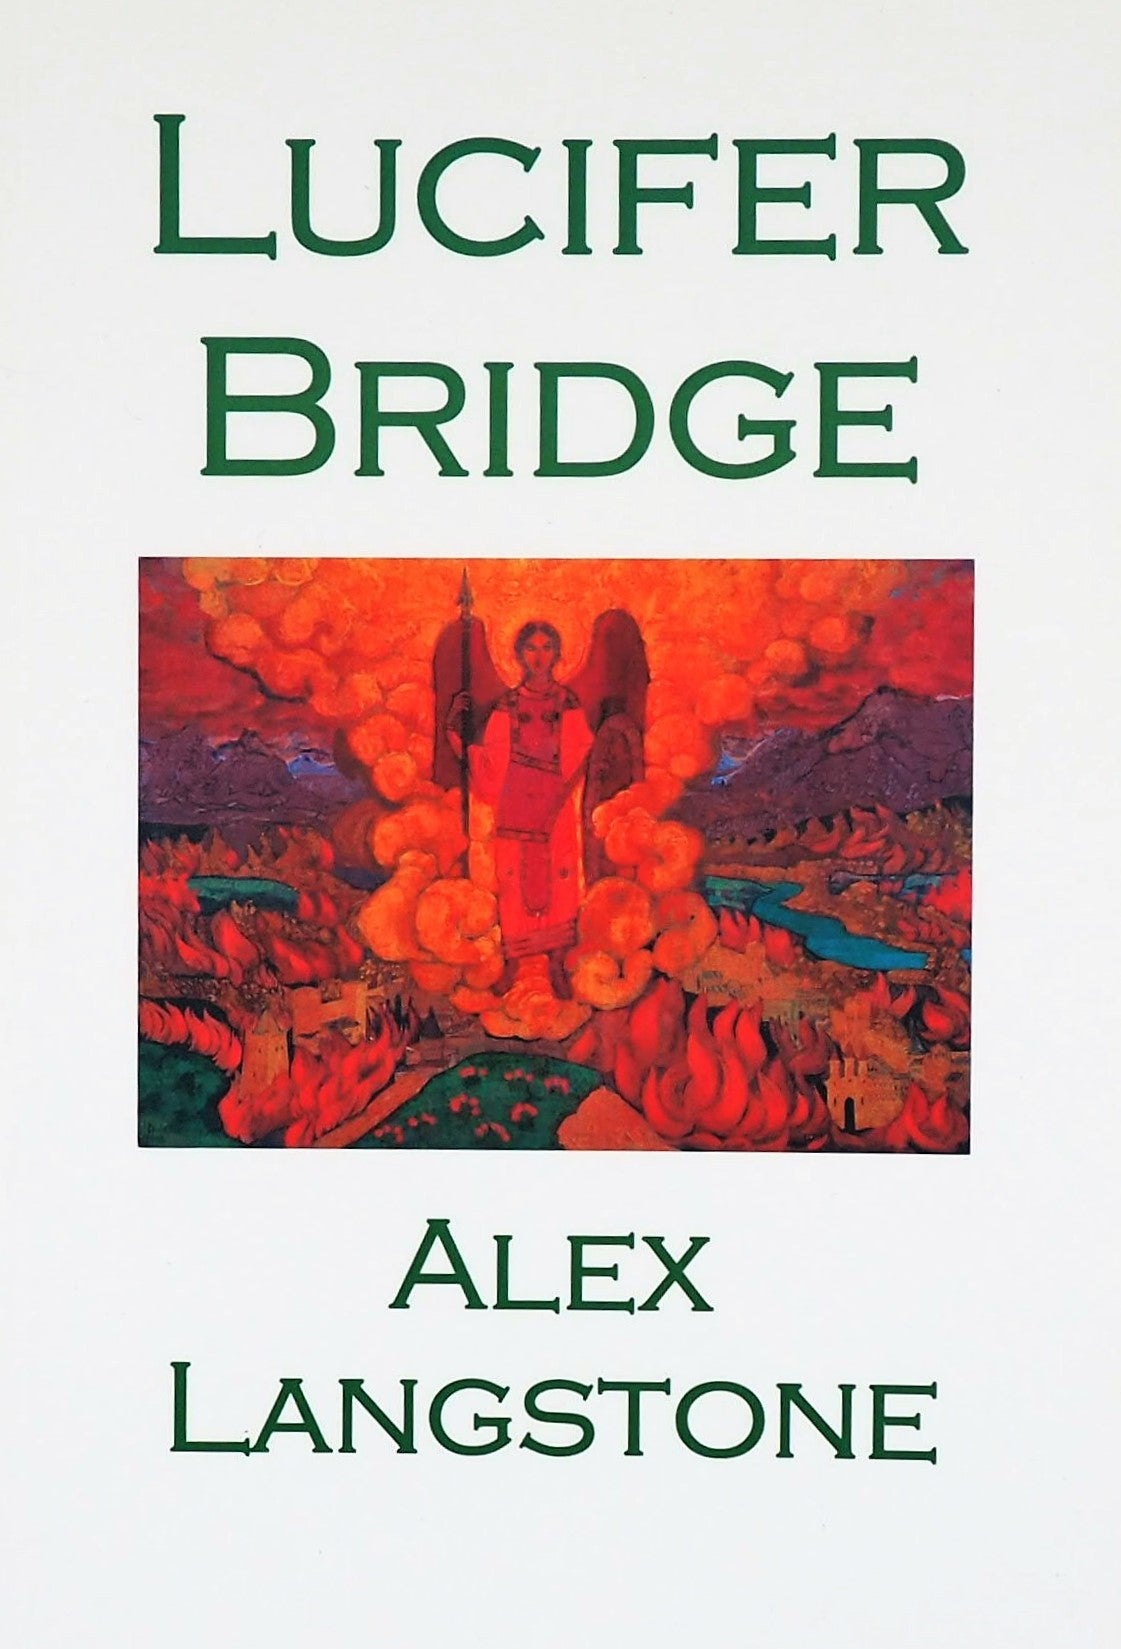 Image of Lucifer Bridge (limited edition, signed by author)